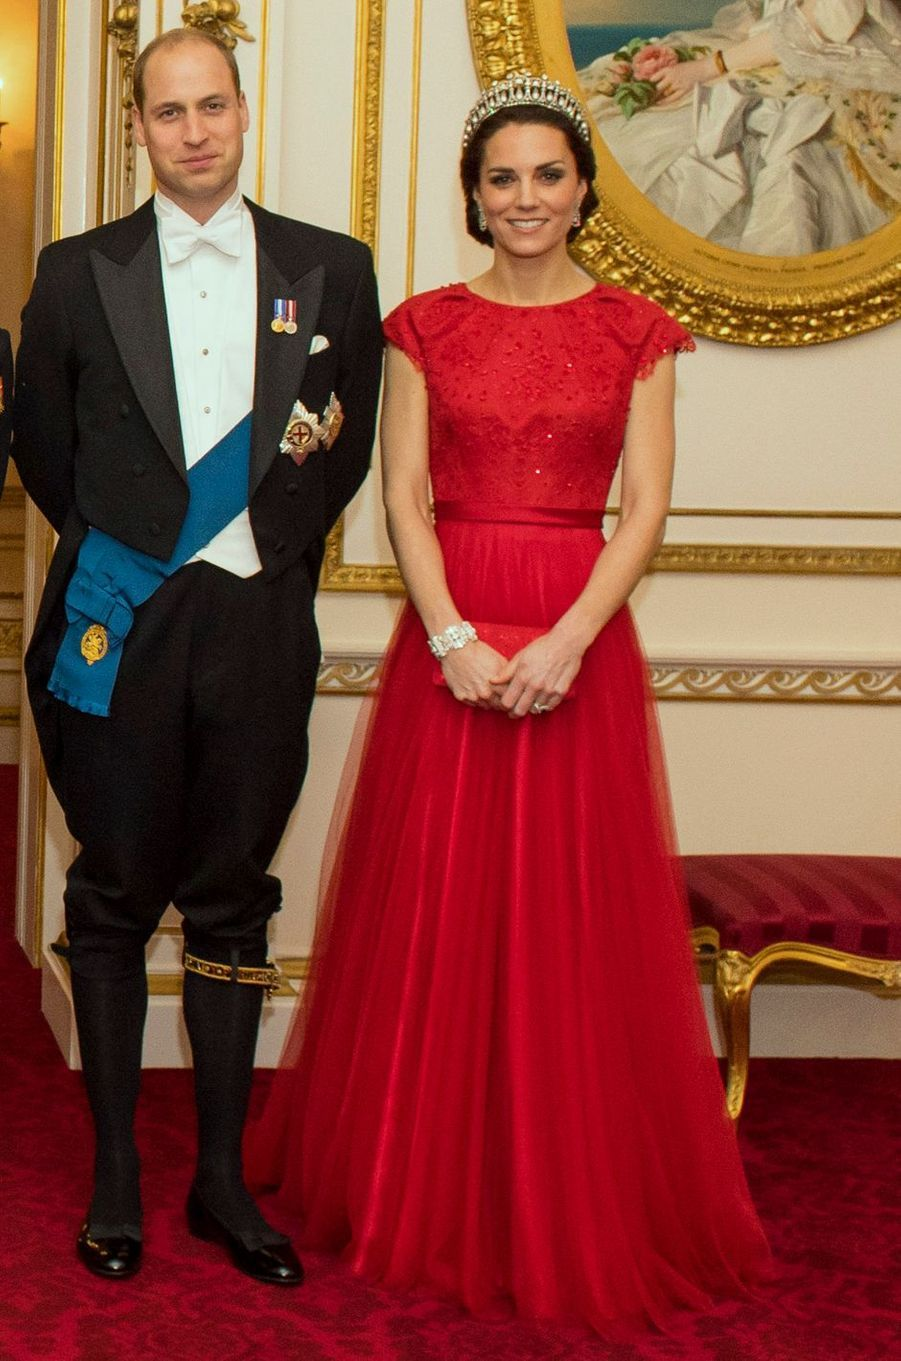 Le prince William et la duchesse Catherine de Cambridge à Buckingham Palace à Londres, le 8 décembre 2016